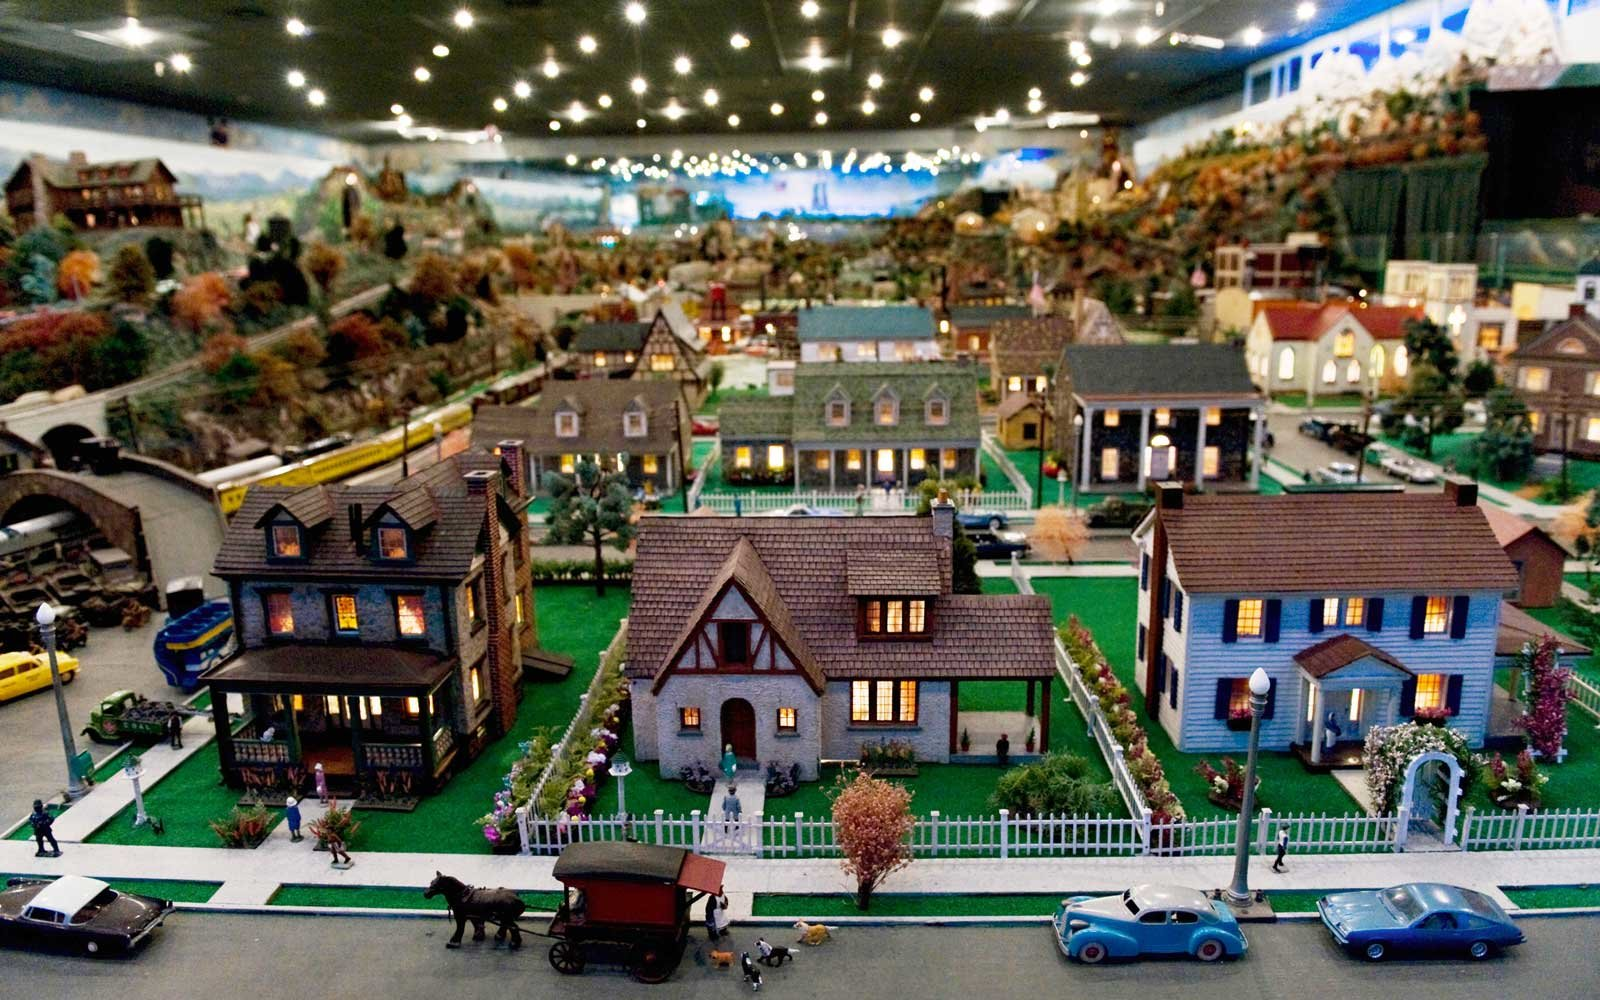 The World S Greatest Miniature Village Is Looking For A